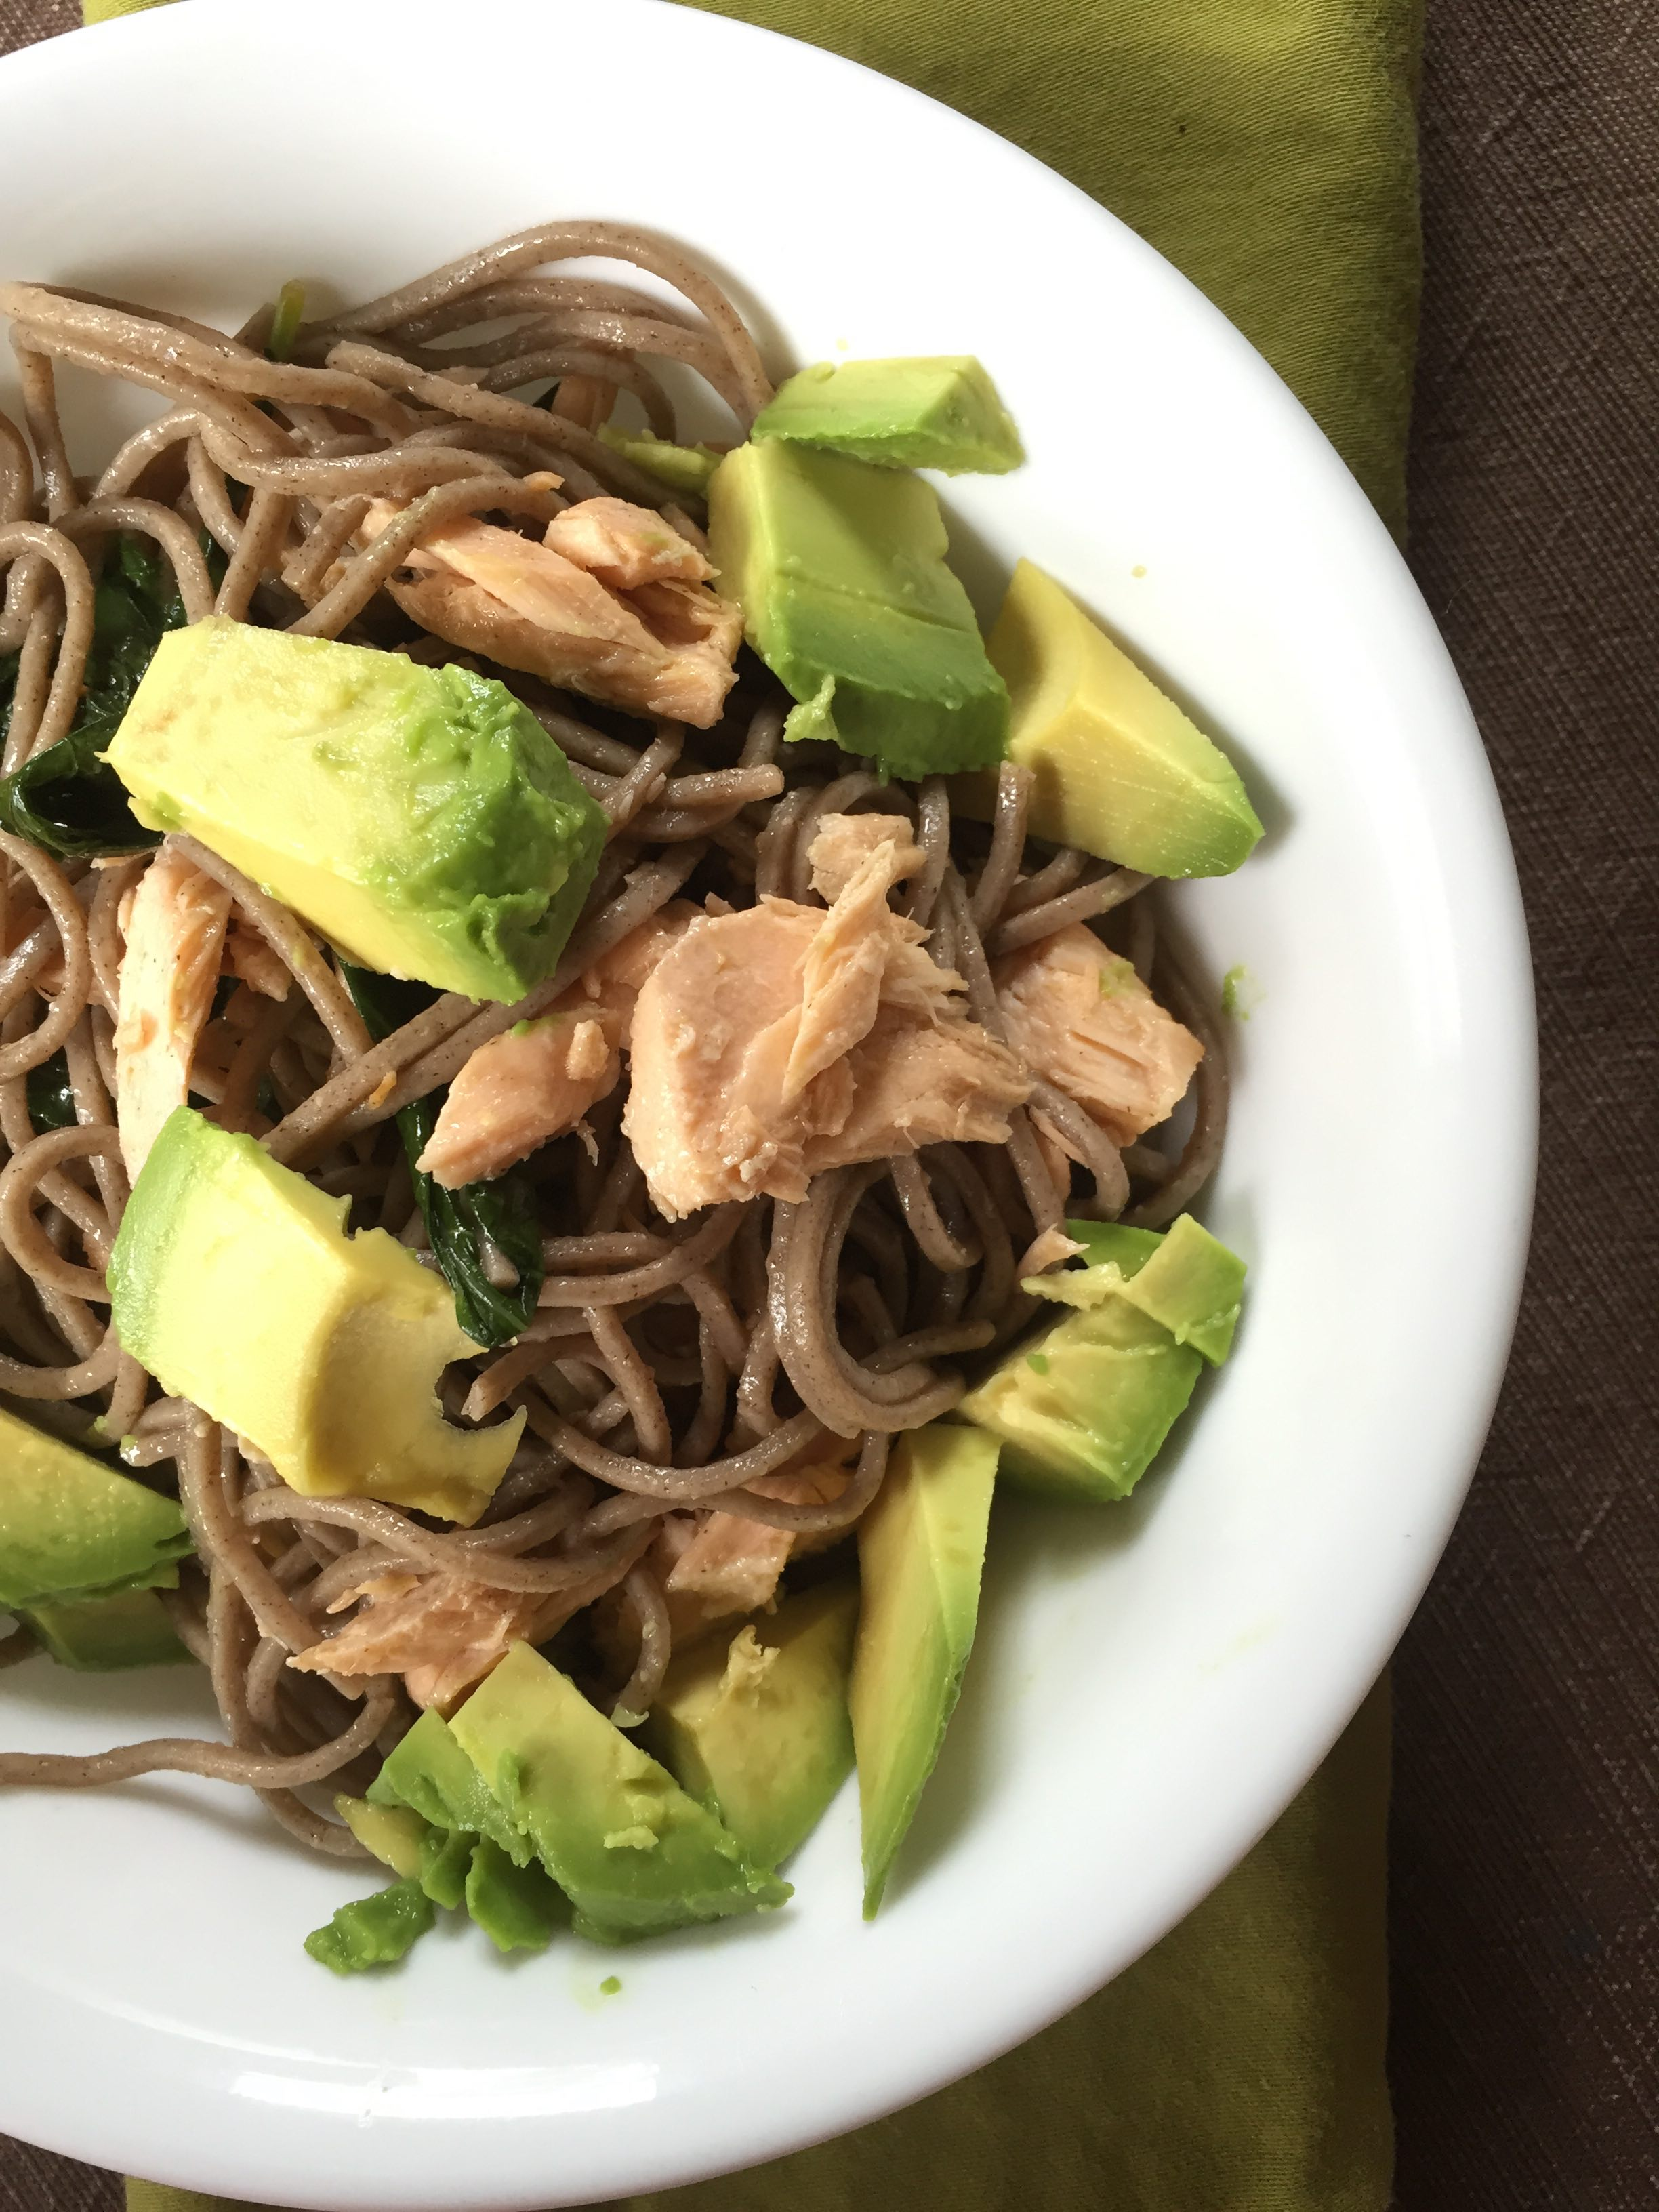 Cold Soba Noodles with Salmon, Kale & Avocado